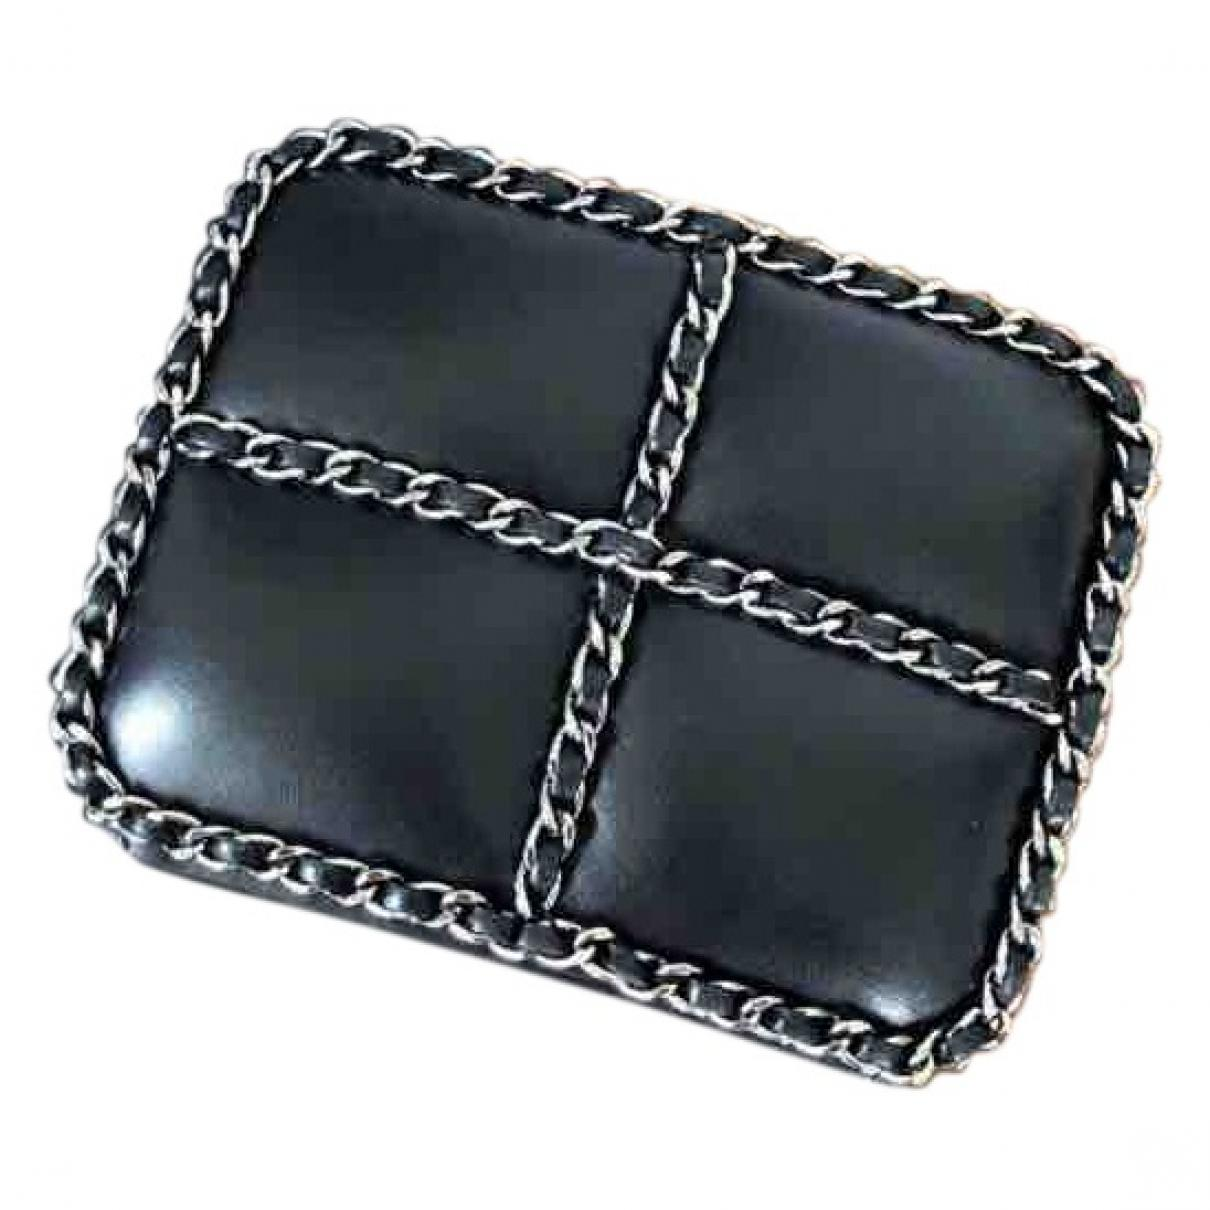 163edfe45ee4 Chanel. Women's Black Leather Clutch Bag. £3,500 From Vestiaire Collective